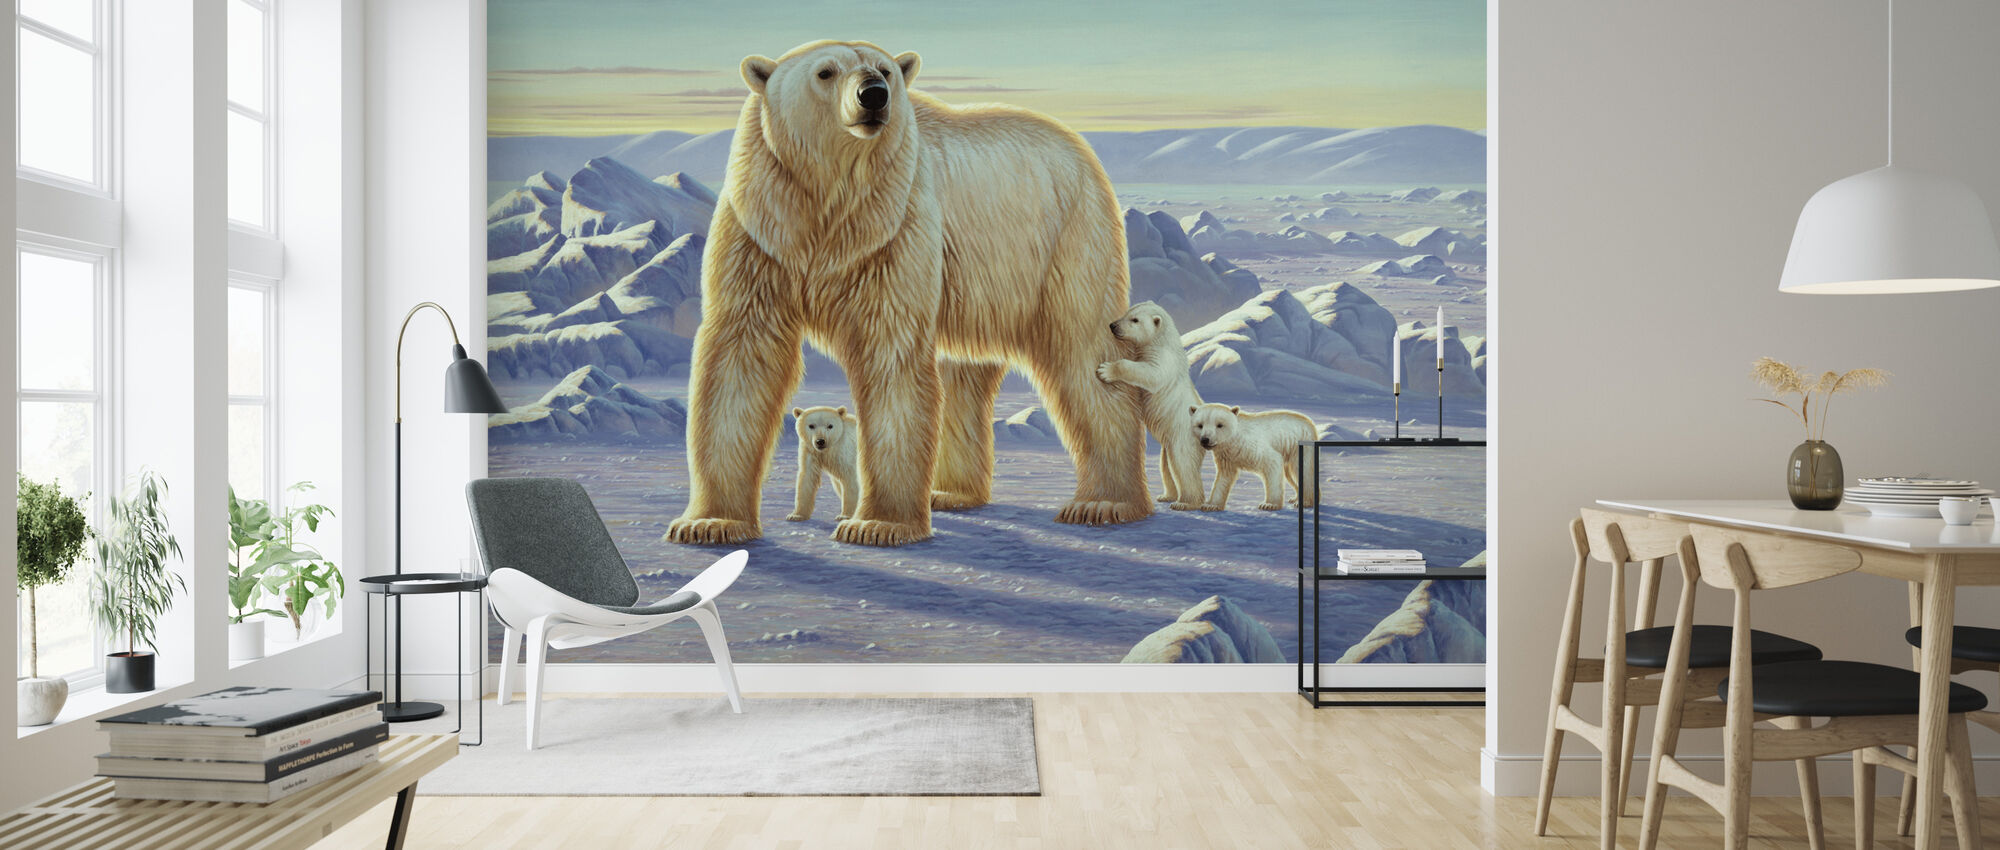 Polar Bear with Cubs - Wallpaper - Living Room